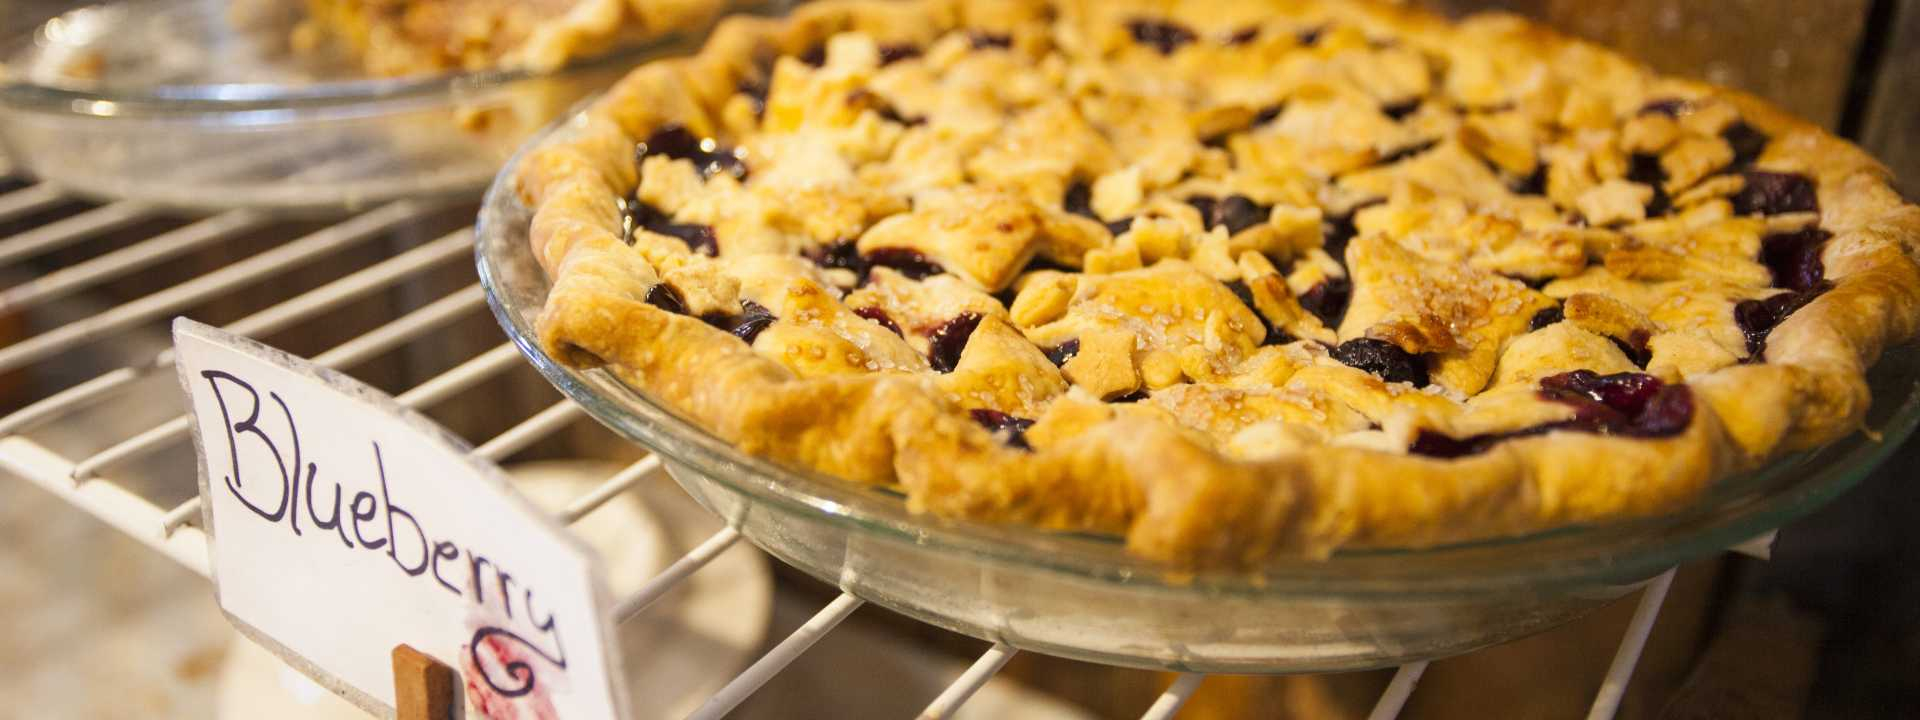 A freshly-baked blueberry pie on display at Pie Town's annual Pie Festival.